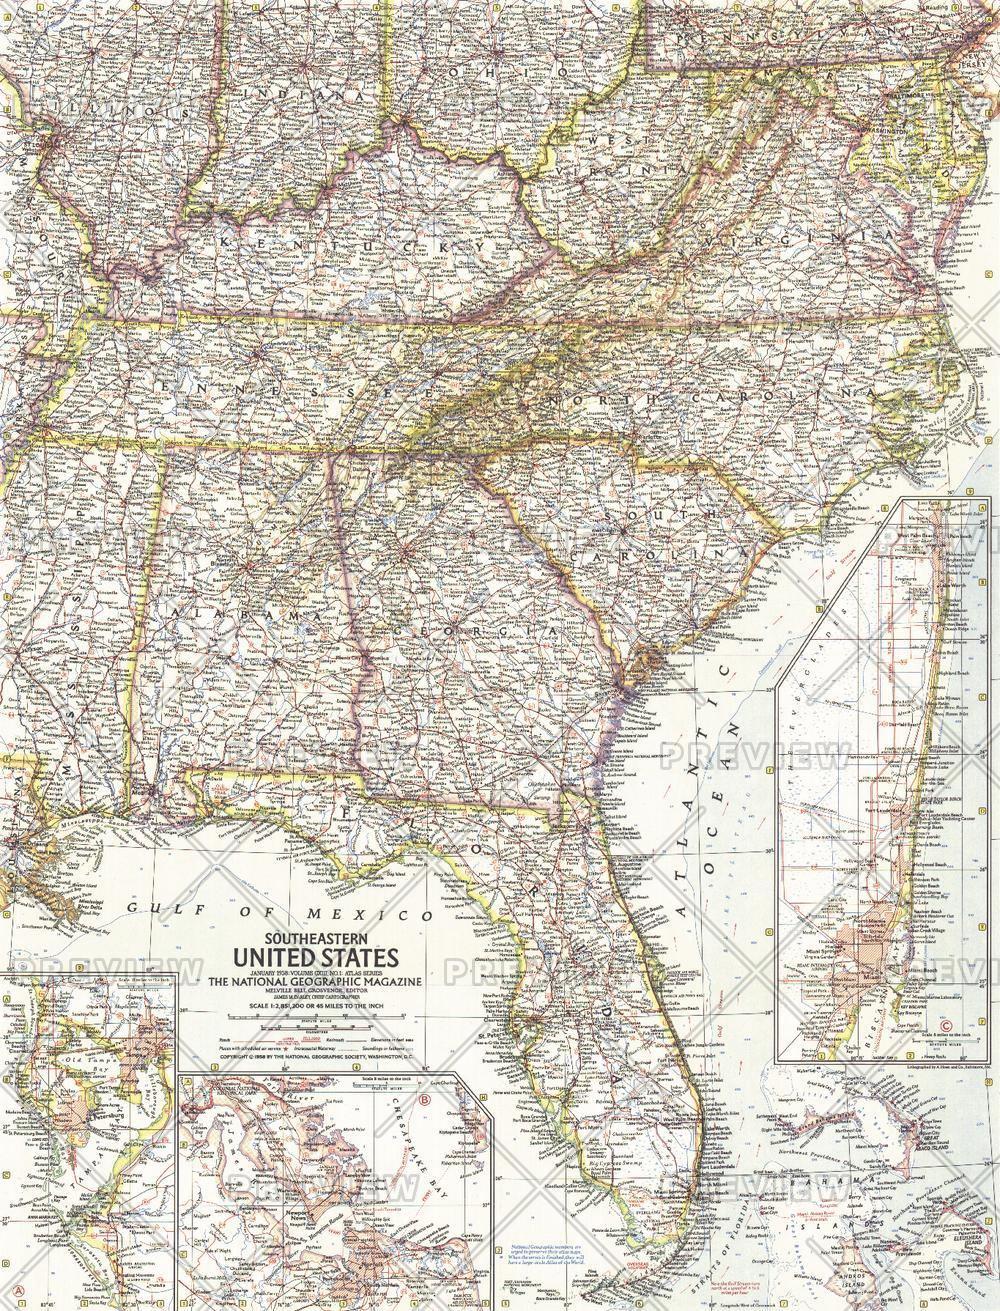 Southeastern United States  -  Published 1958